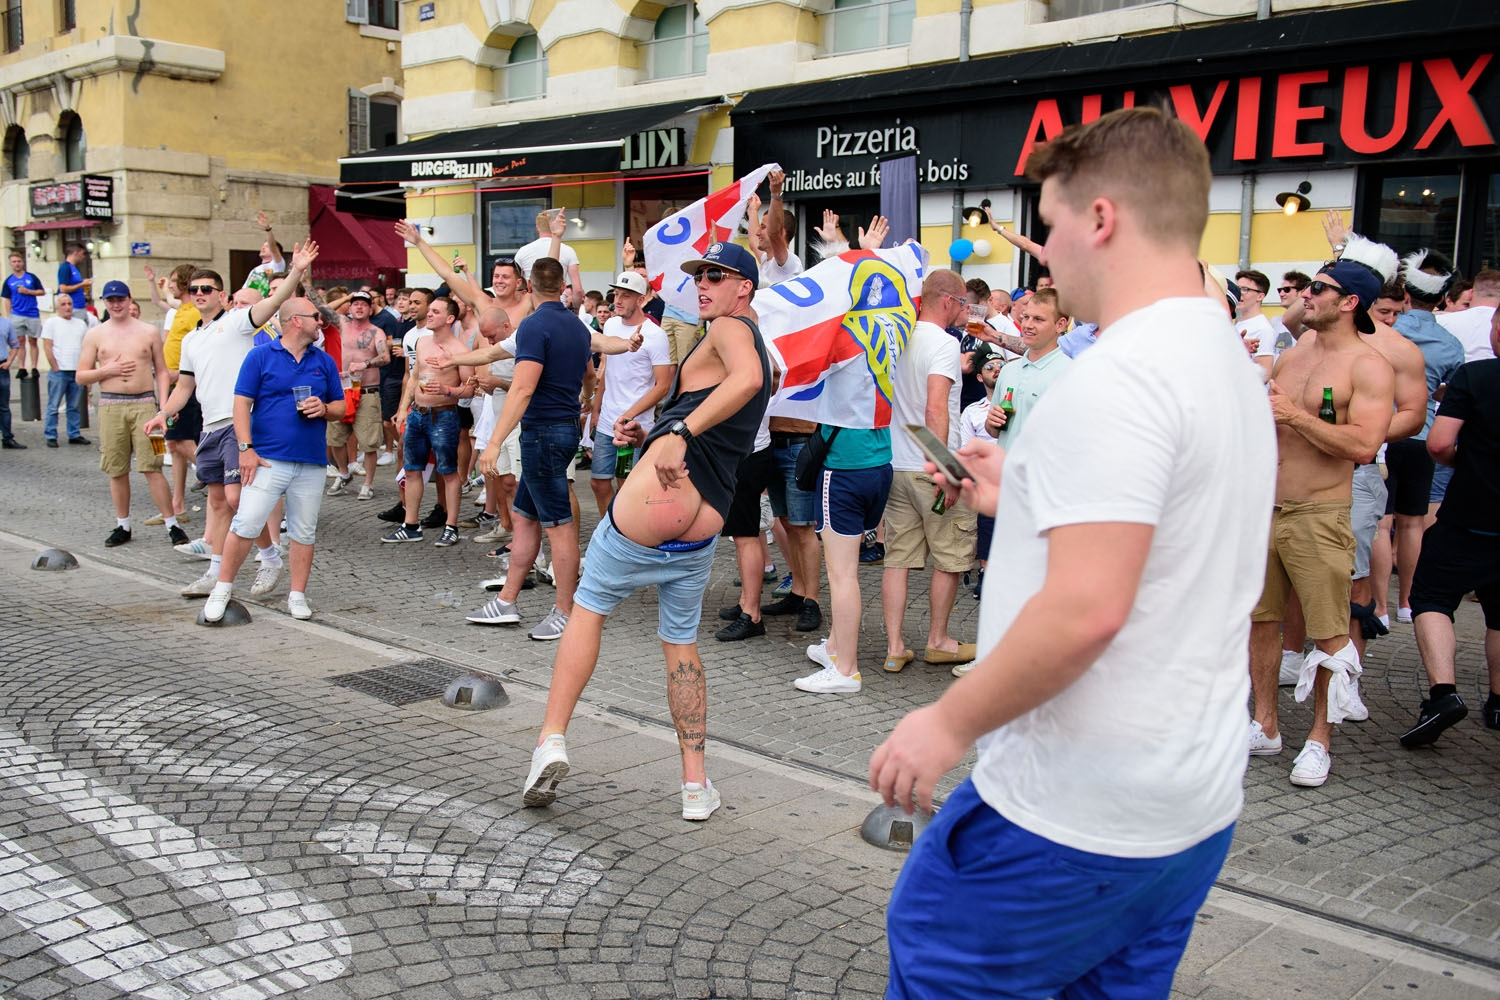 England fans taunt French fans in Marseille, southern France, on June 10, 2016, ahead of England's Euro 2016 football match against Russia on June 11, 2016